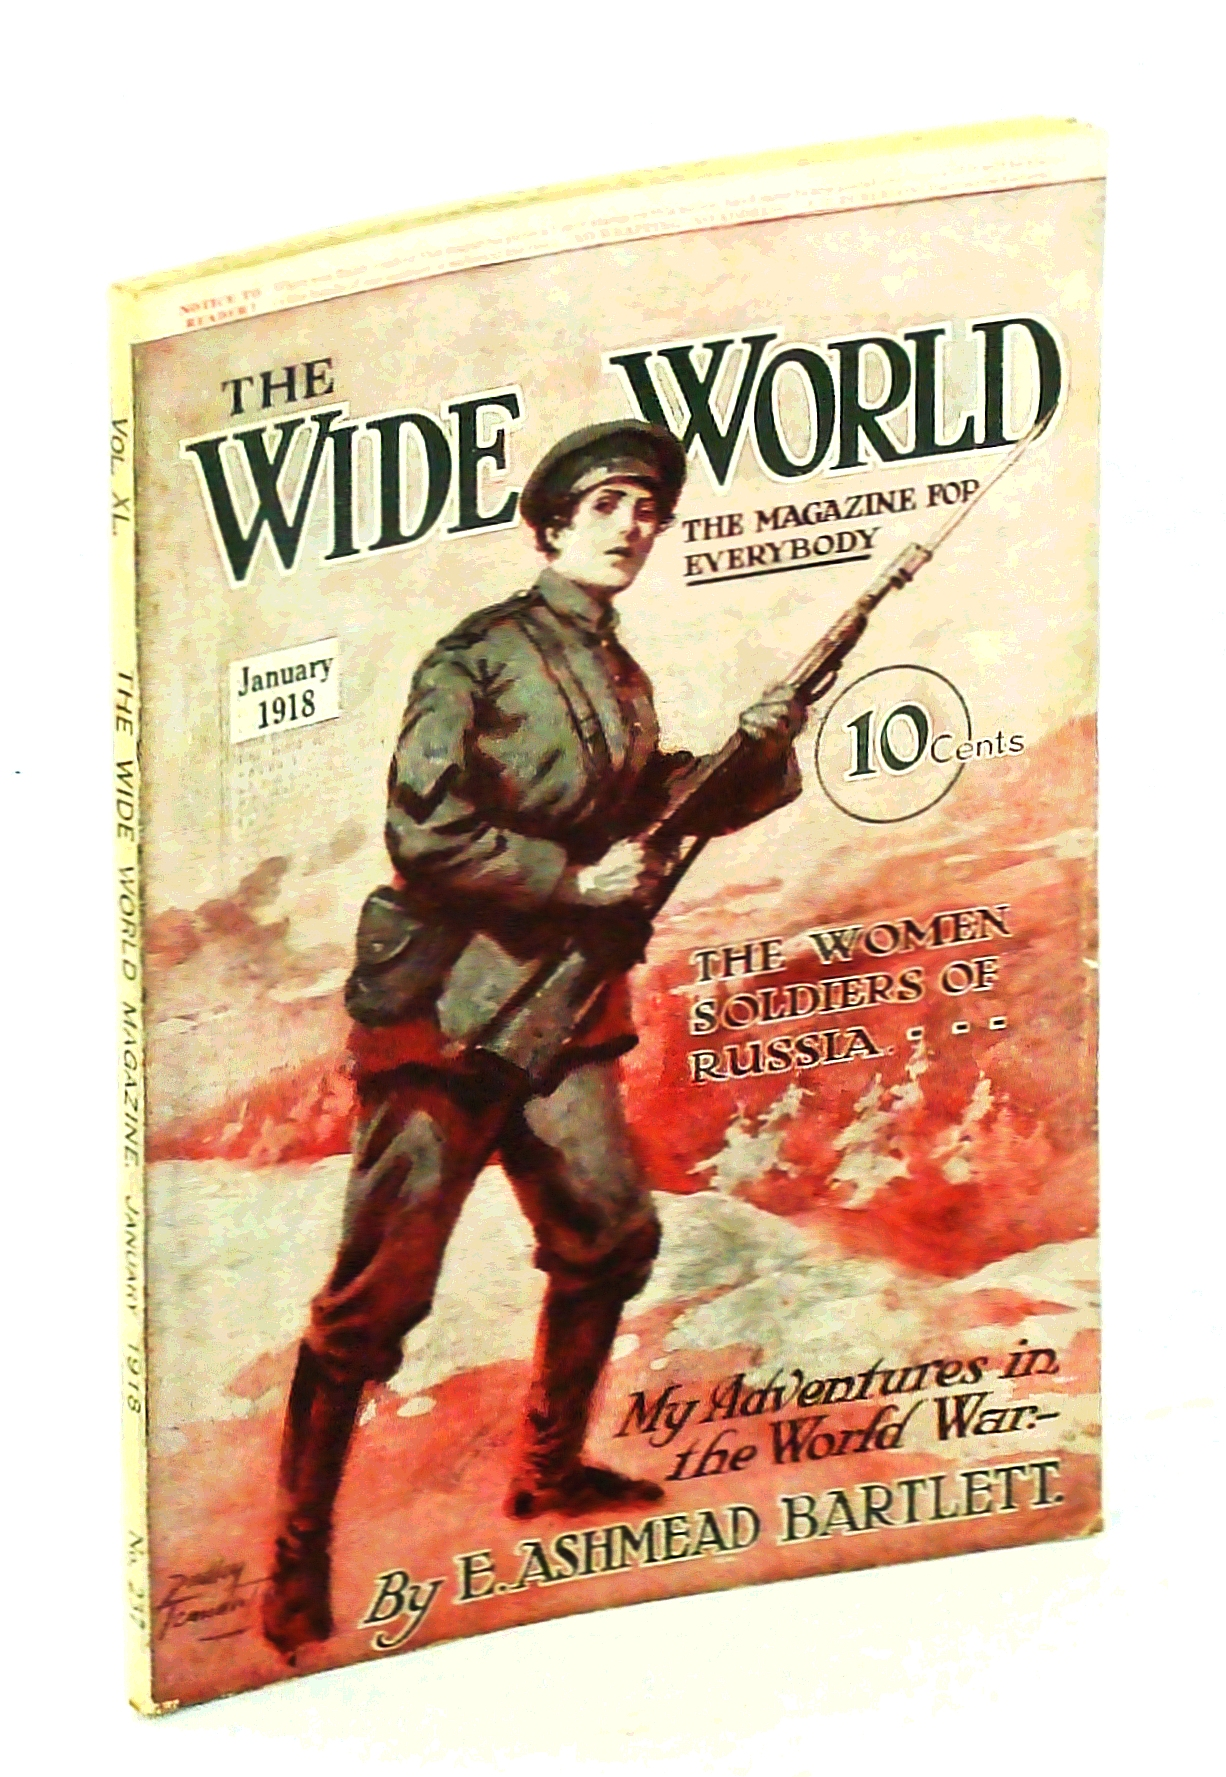 Image for The Wide World Magazine - The Magazine for Everybody, January [Jan.] 1918, Vol. 40, No. 237: The Woman Soldiers of Russia